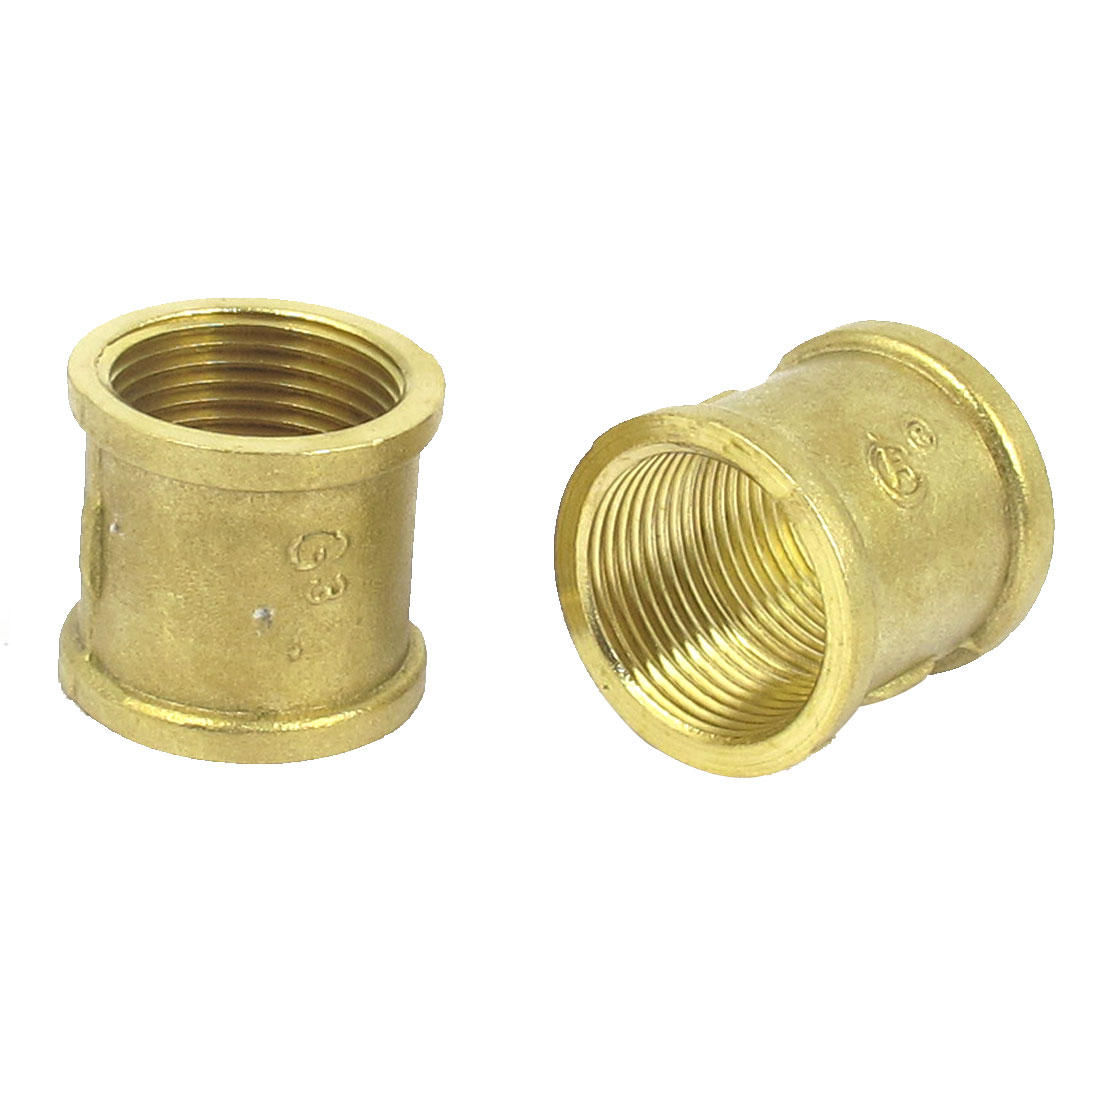 3/4BSP Female Thread Brass Water Pipe Coupling Fitting Connector 2pcs Gold Tone